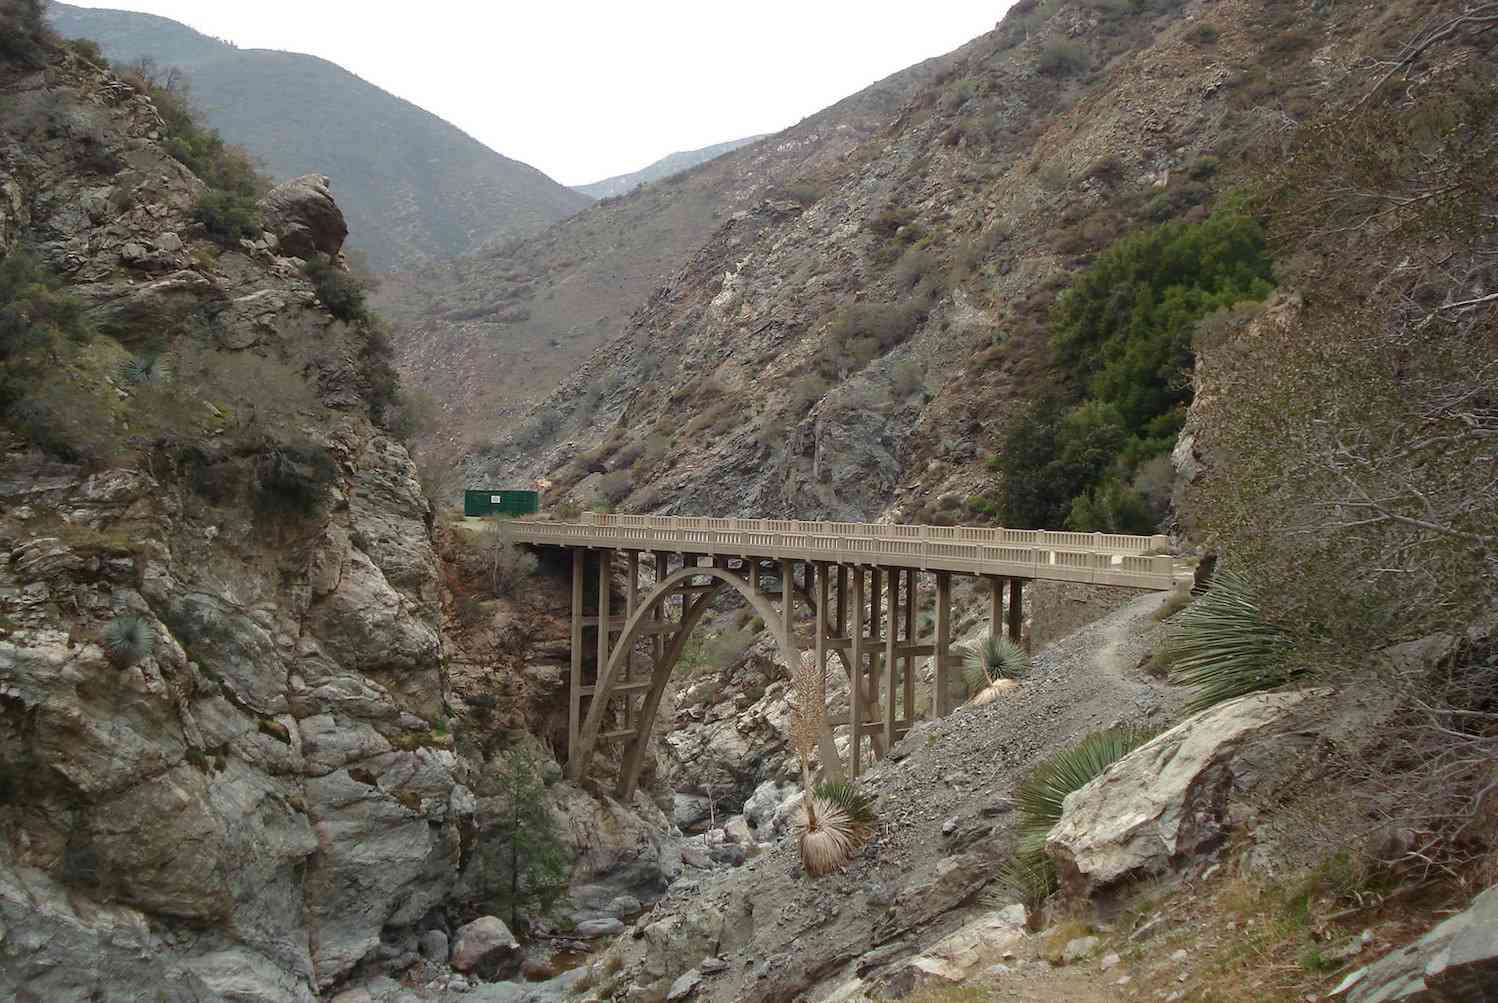 The arched Bridge to Nowhere crossing a dry creek bed among rocky slopes